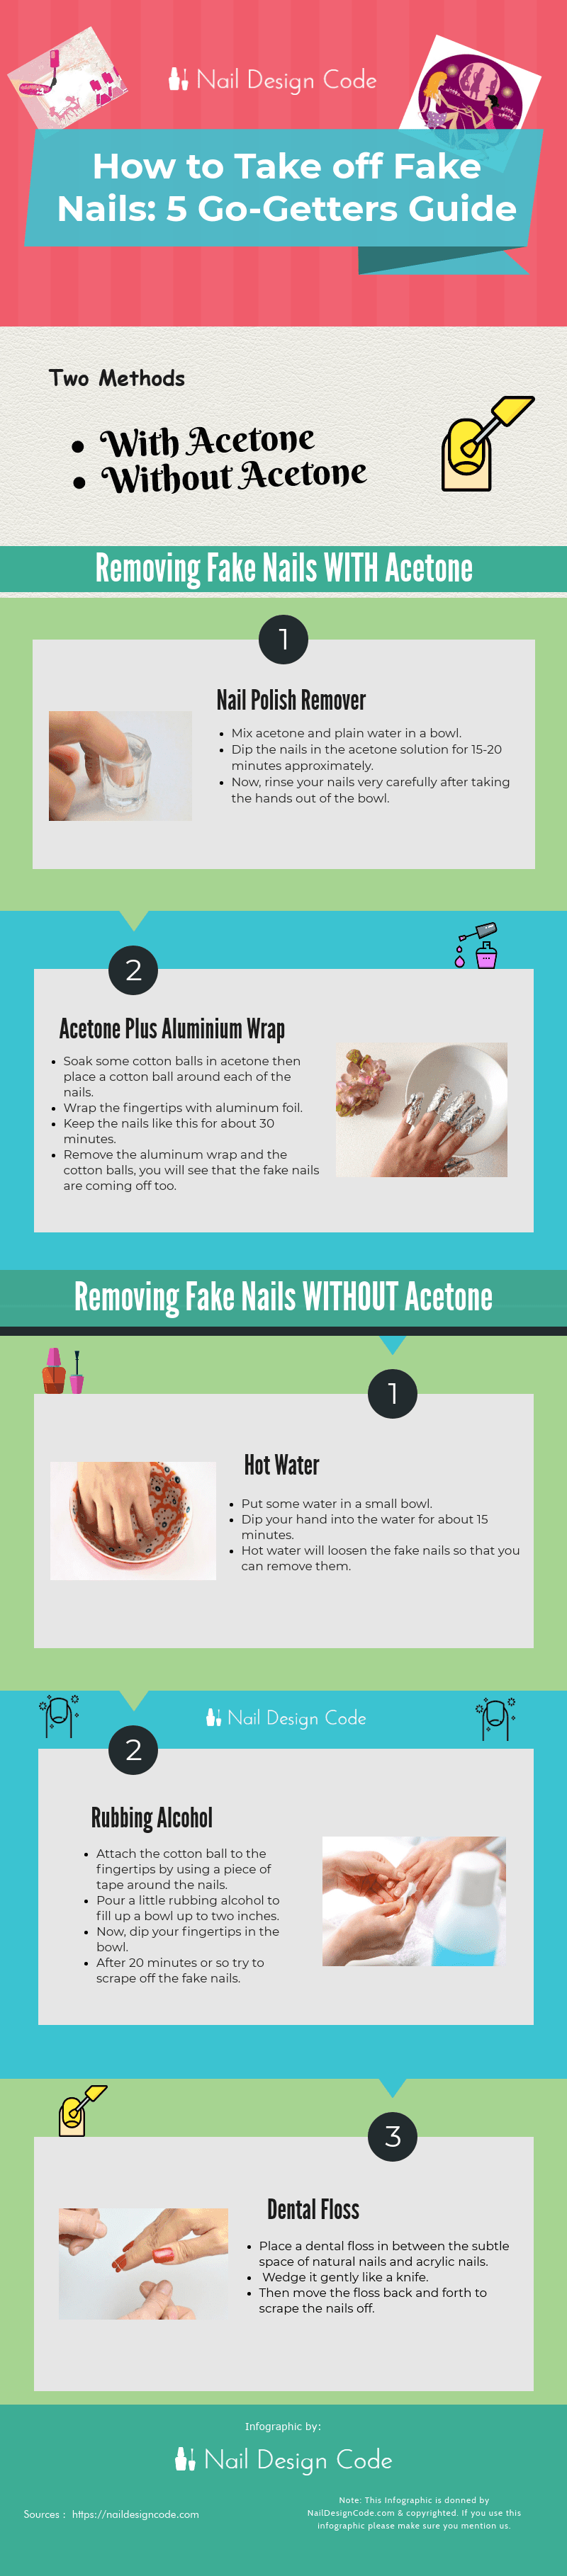 how to take off fake nails at home with and without acetone [Infographic]